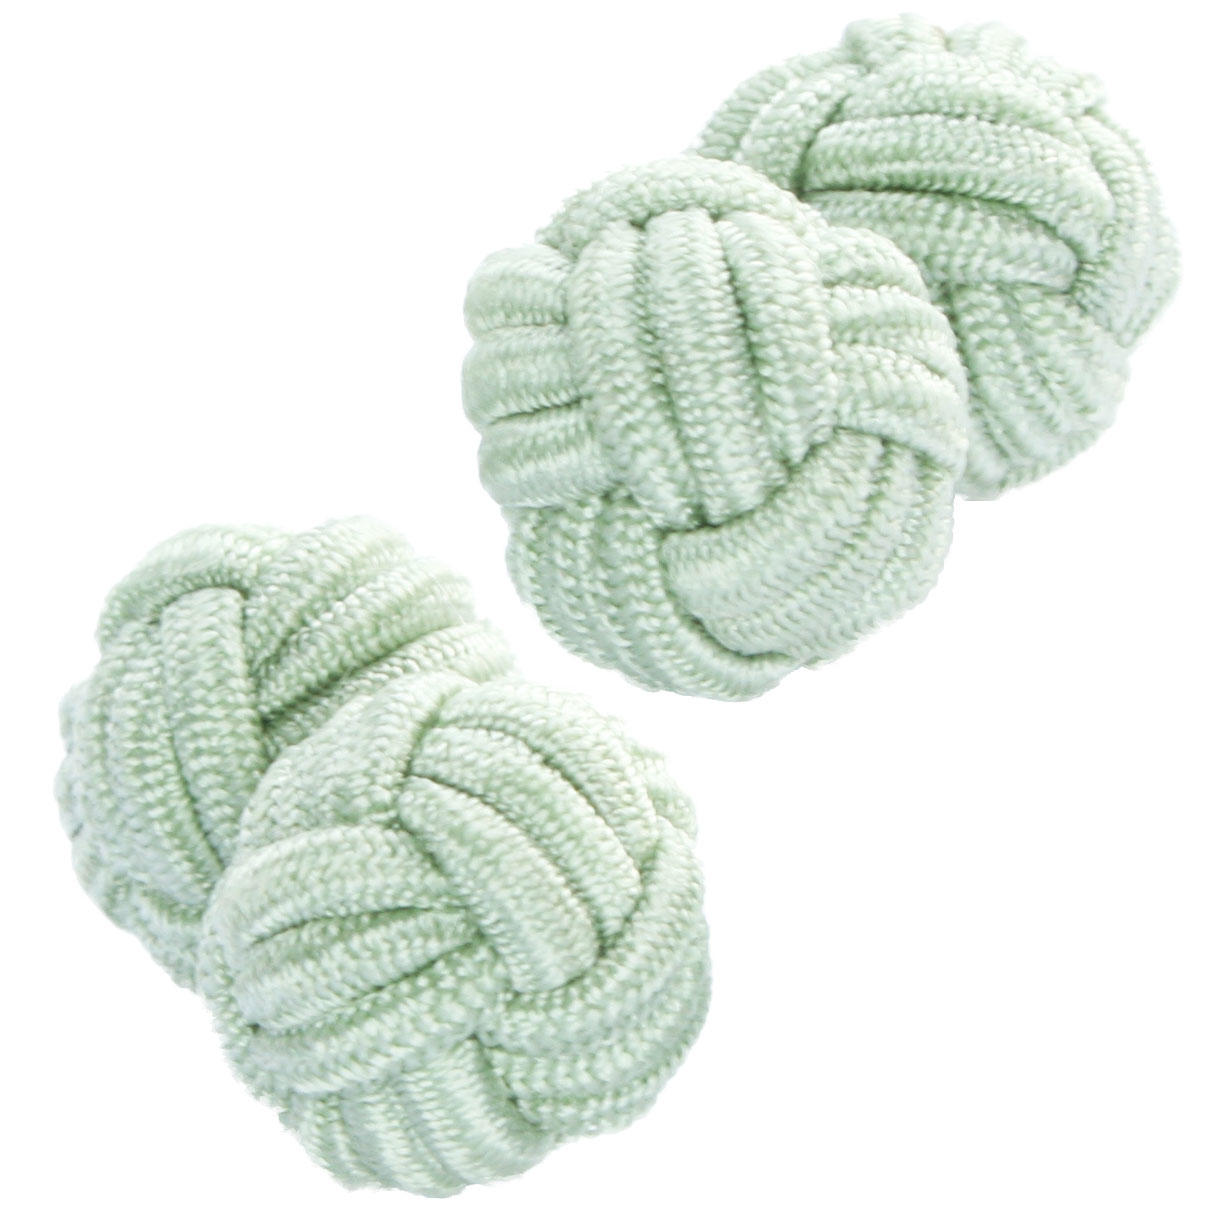 Peppermint Knot Cufflinks from Cuffs & Co